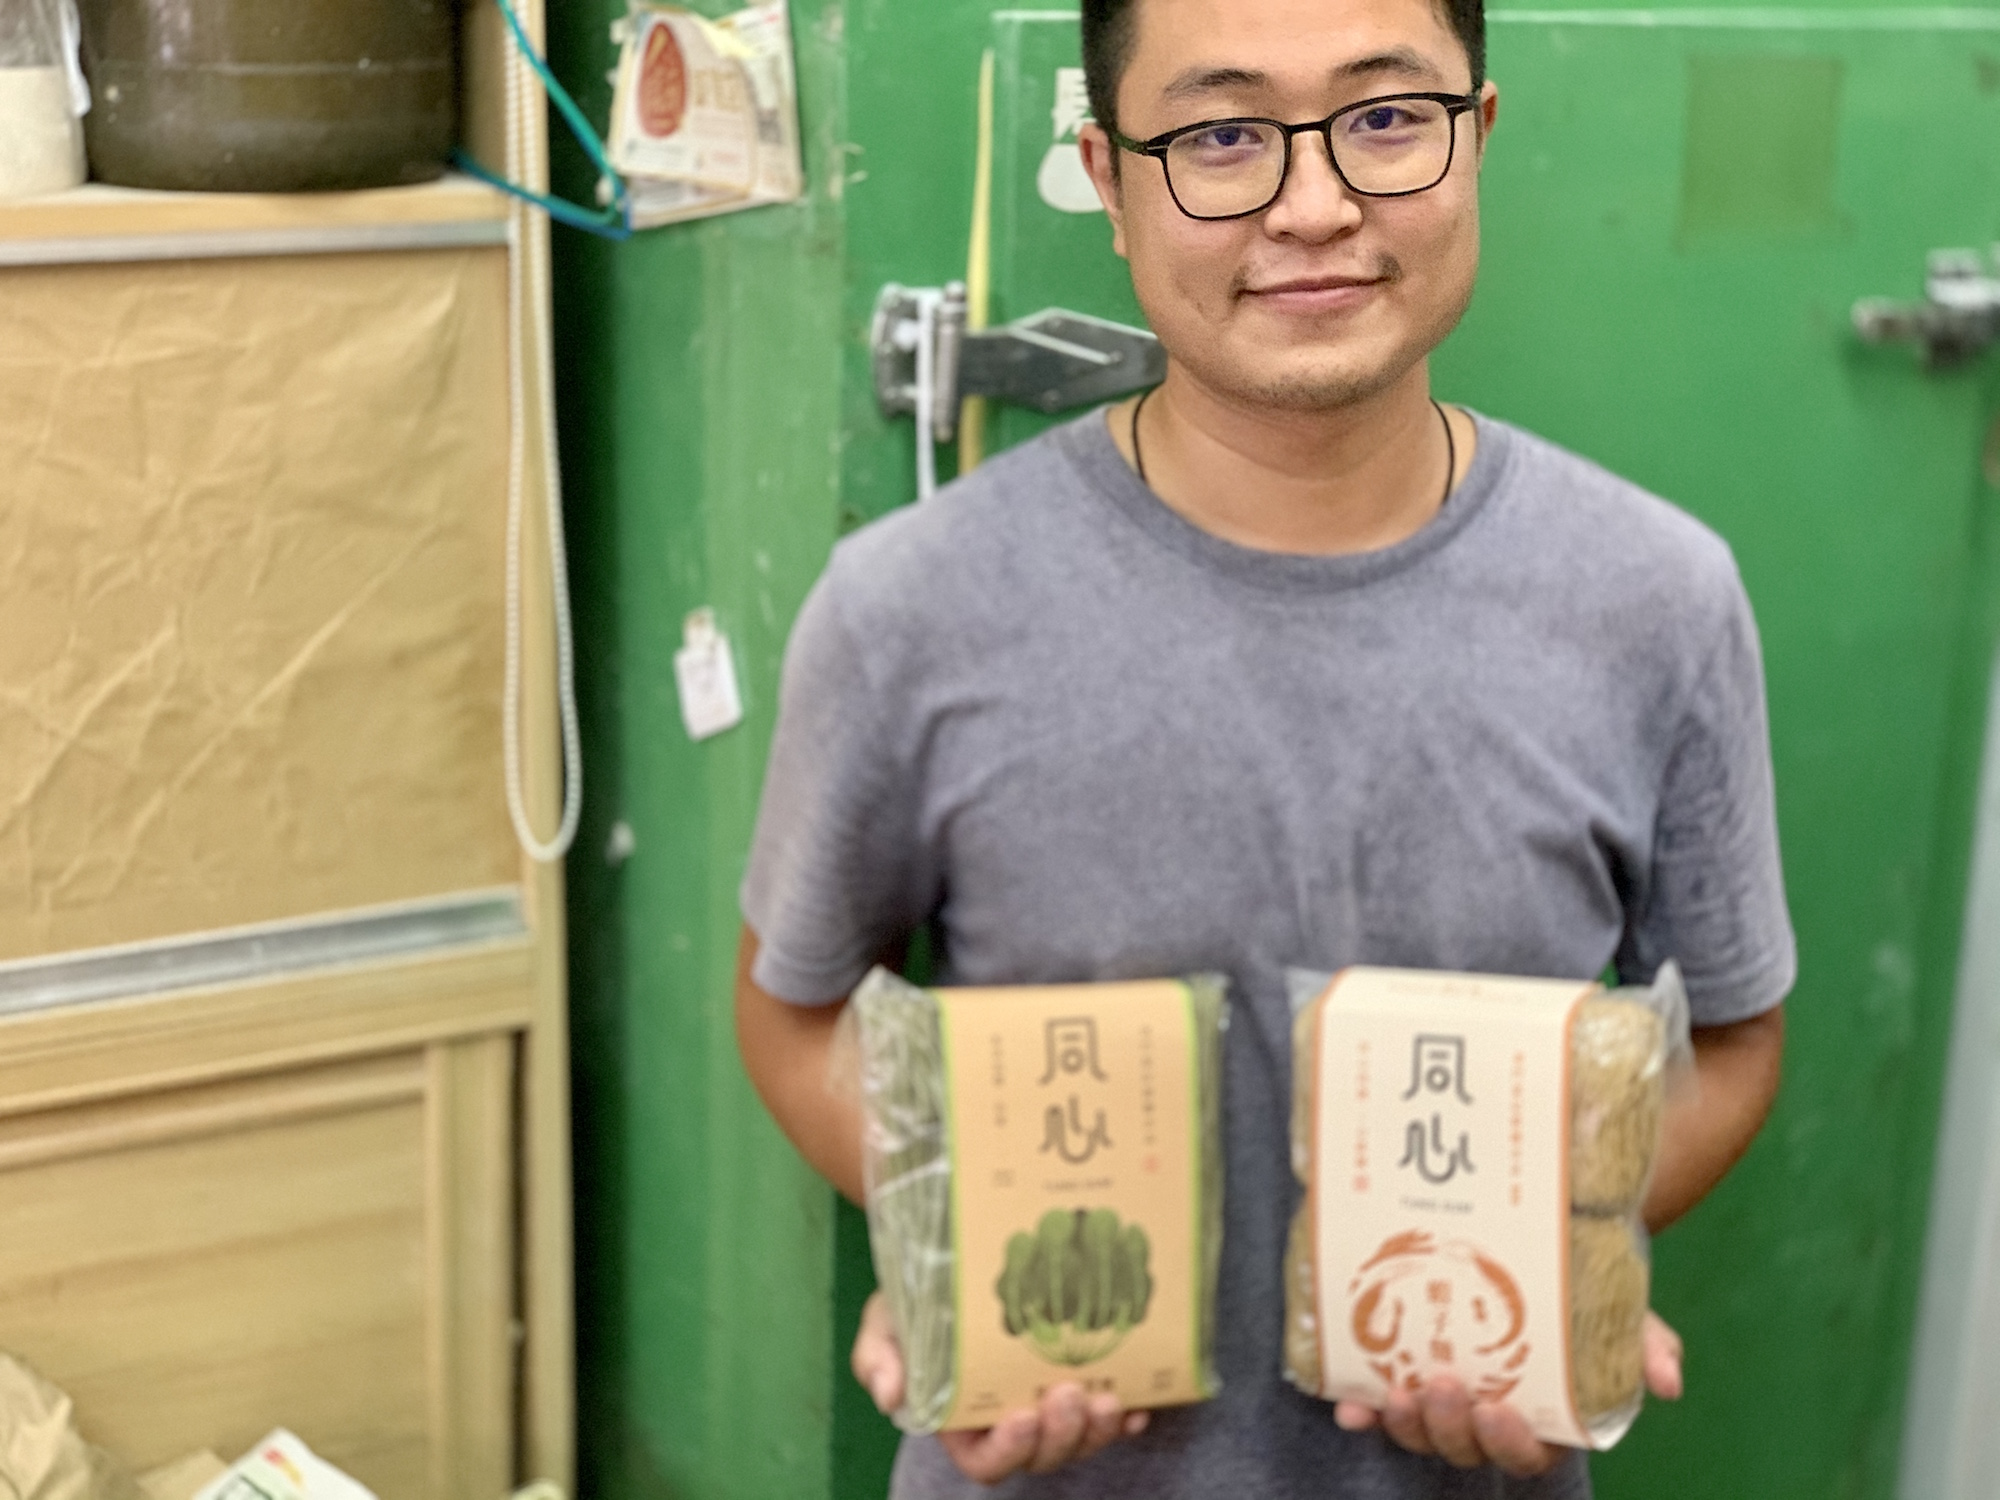 Cheong Kei Noodles Owner Holding Noodles Inside Macau Lifestyle